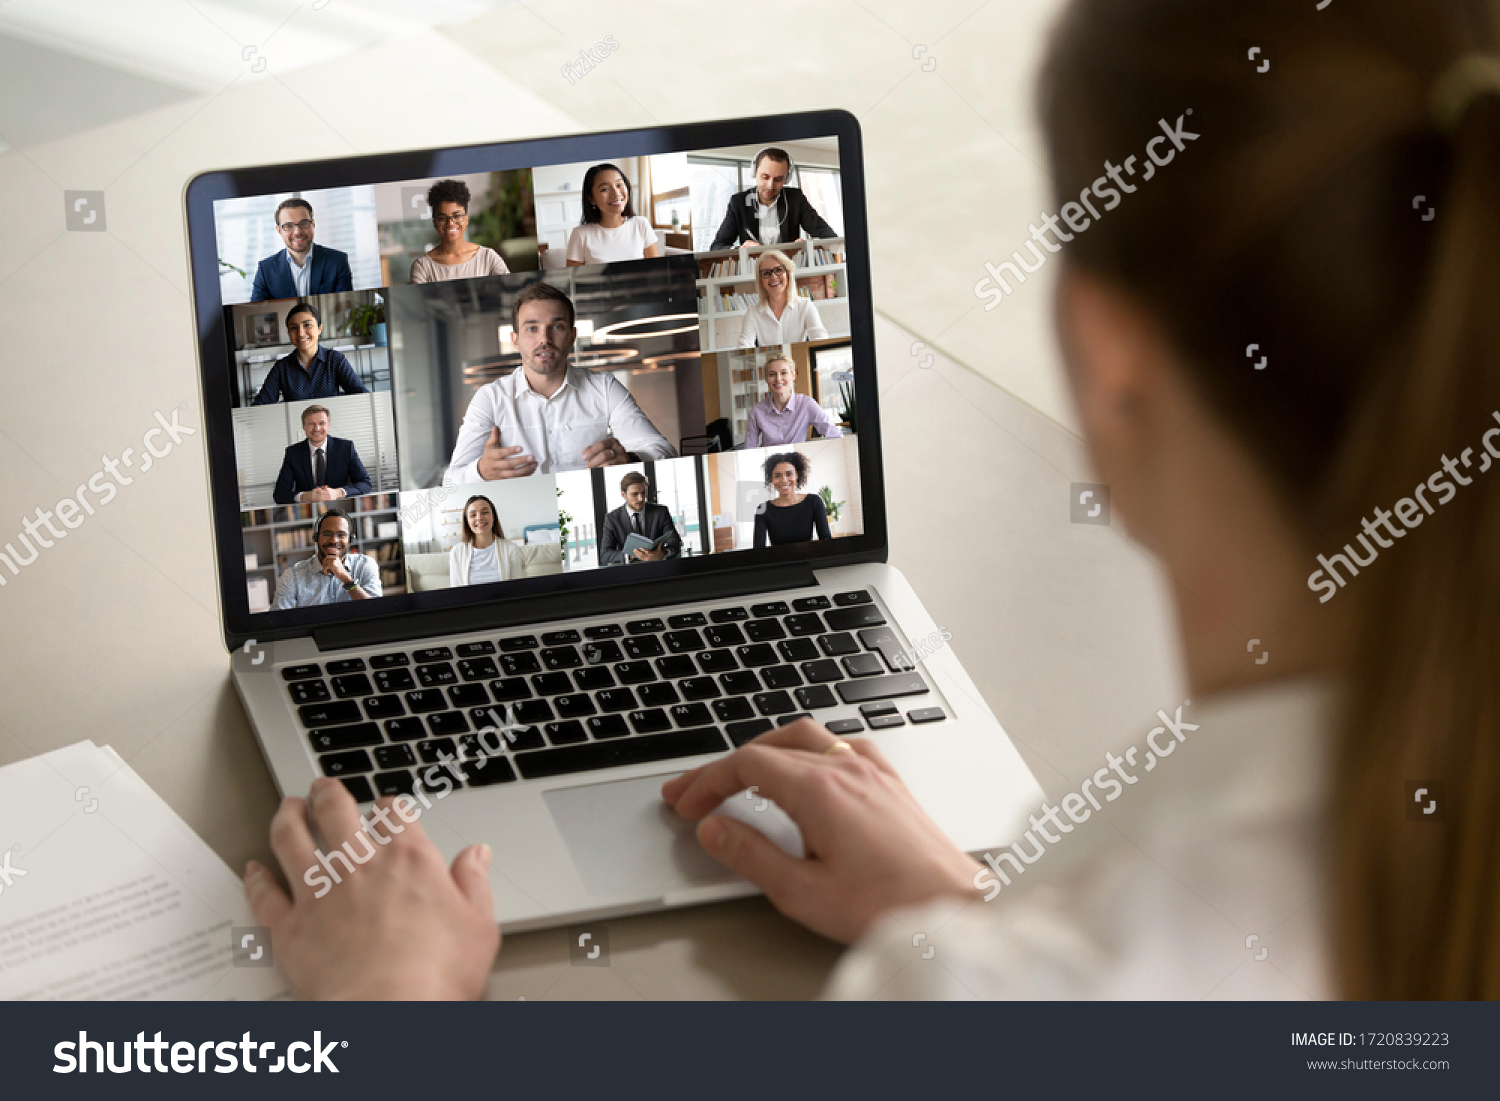 Back view of female employee engaged in web team meeting briefing using laptop at home, have webcam conference, woman worker talk on video call with diverse multiracial colleagues on computer #1720839223